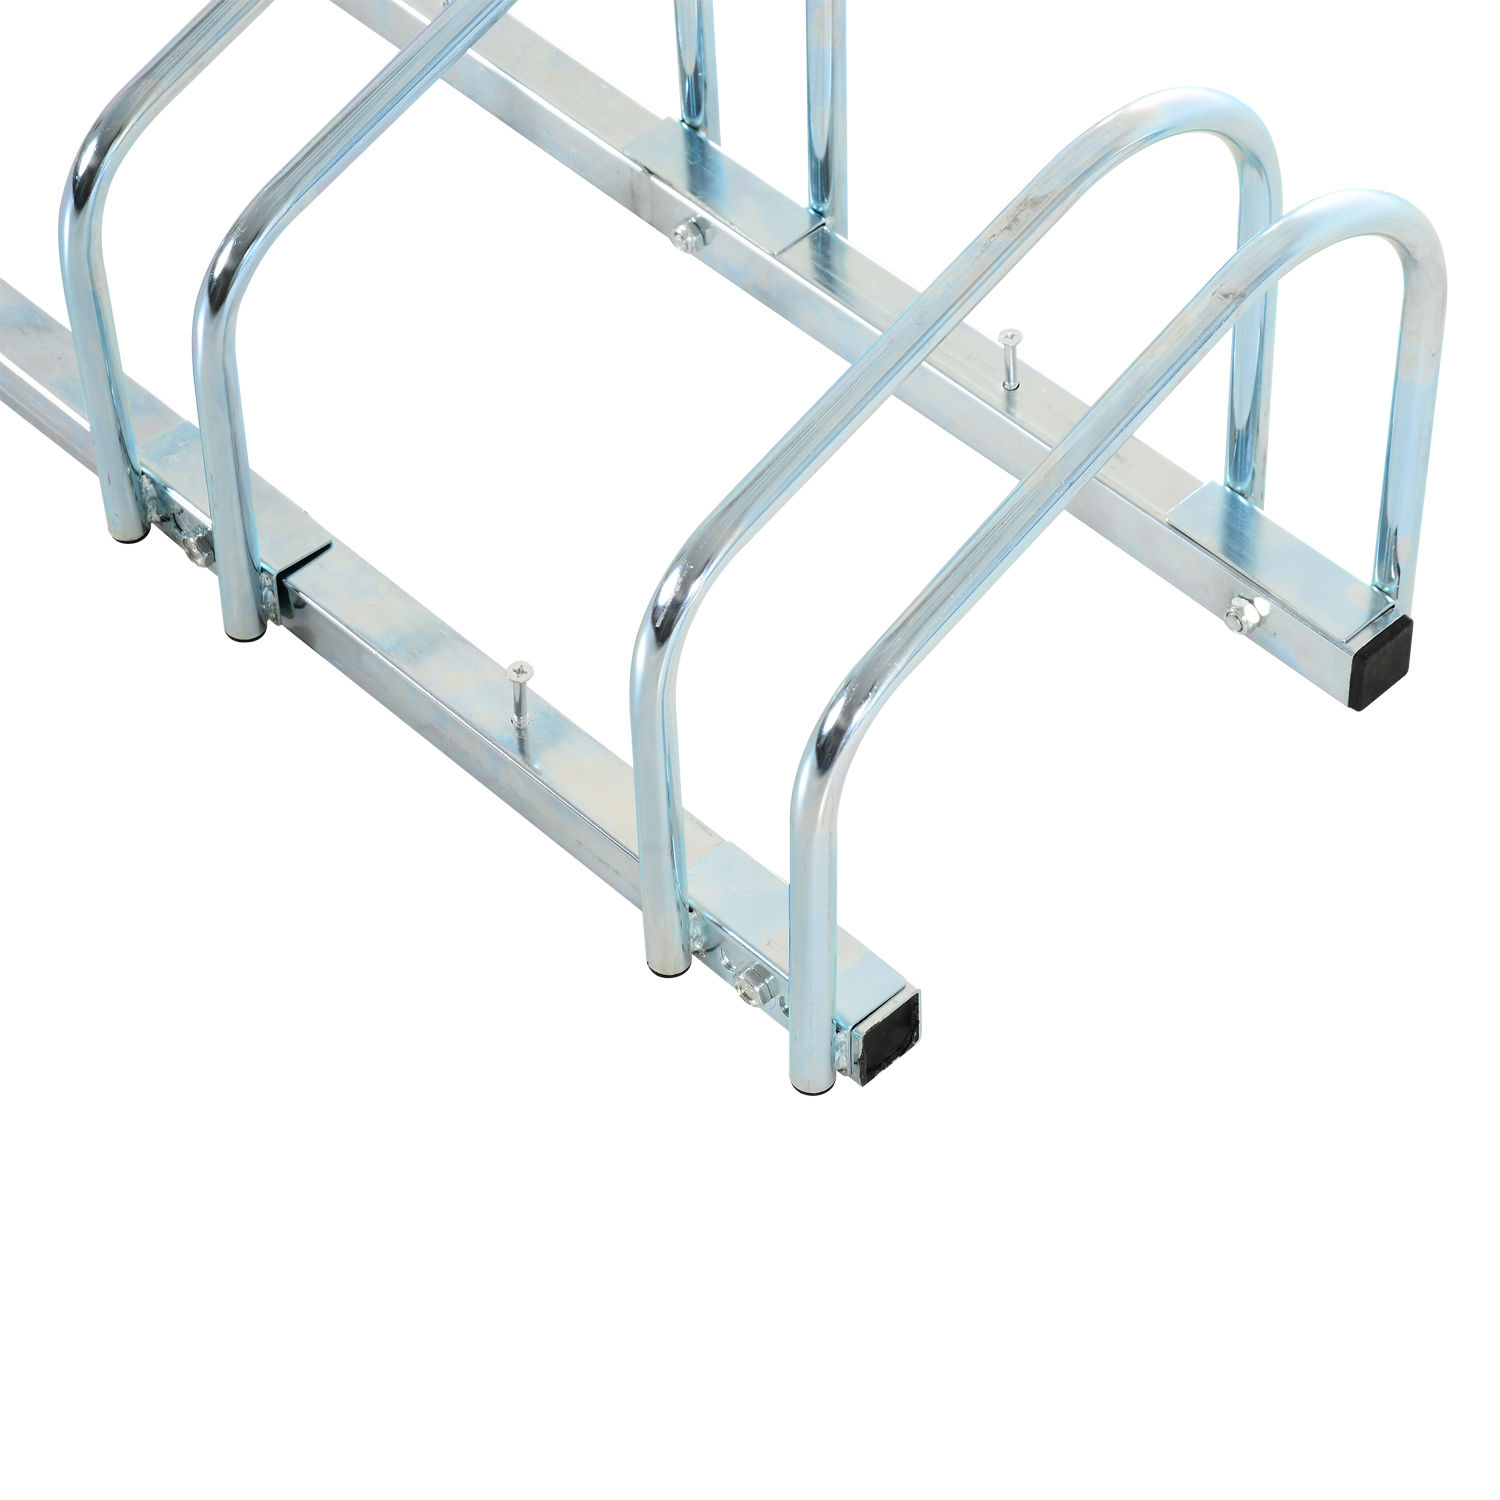 Bicycle-Bike-Parking-Cycle-Floor-Rack-Stand-Storage-Mount-Holder-Steel-Pipe miniatura 7